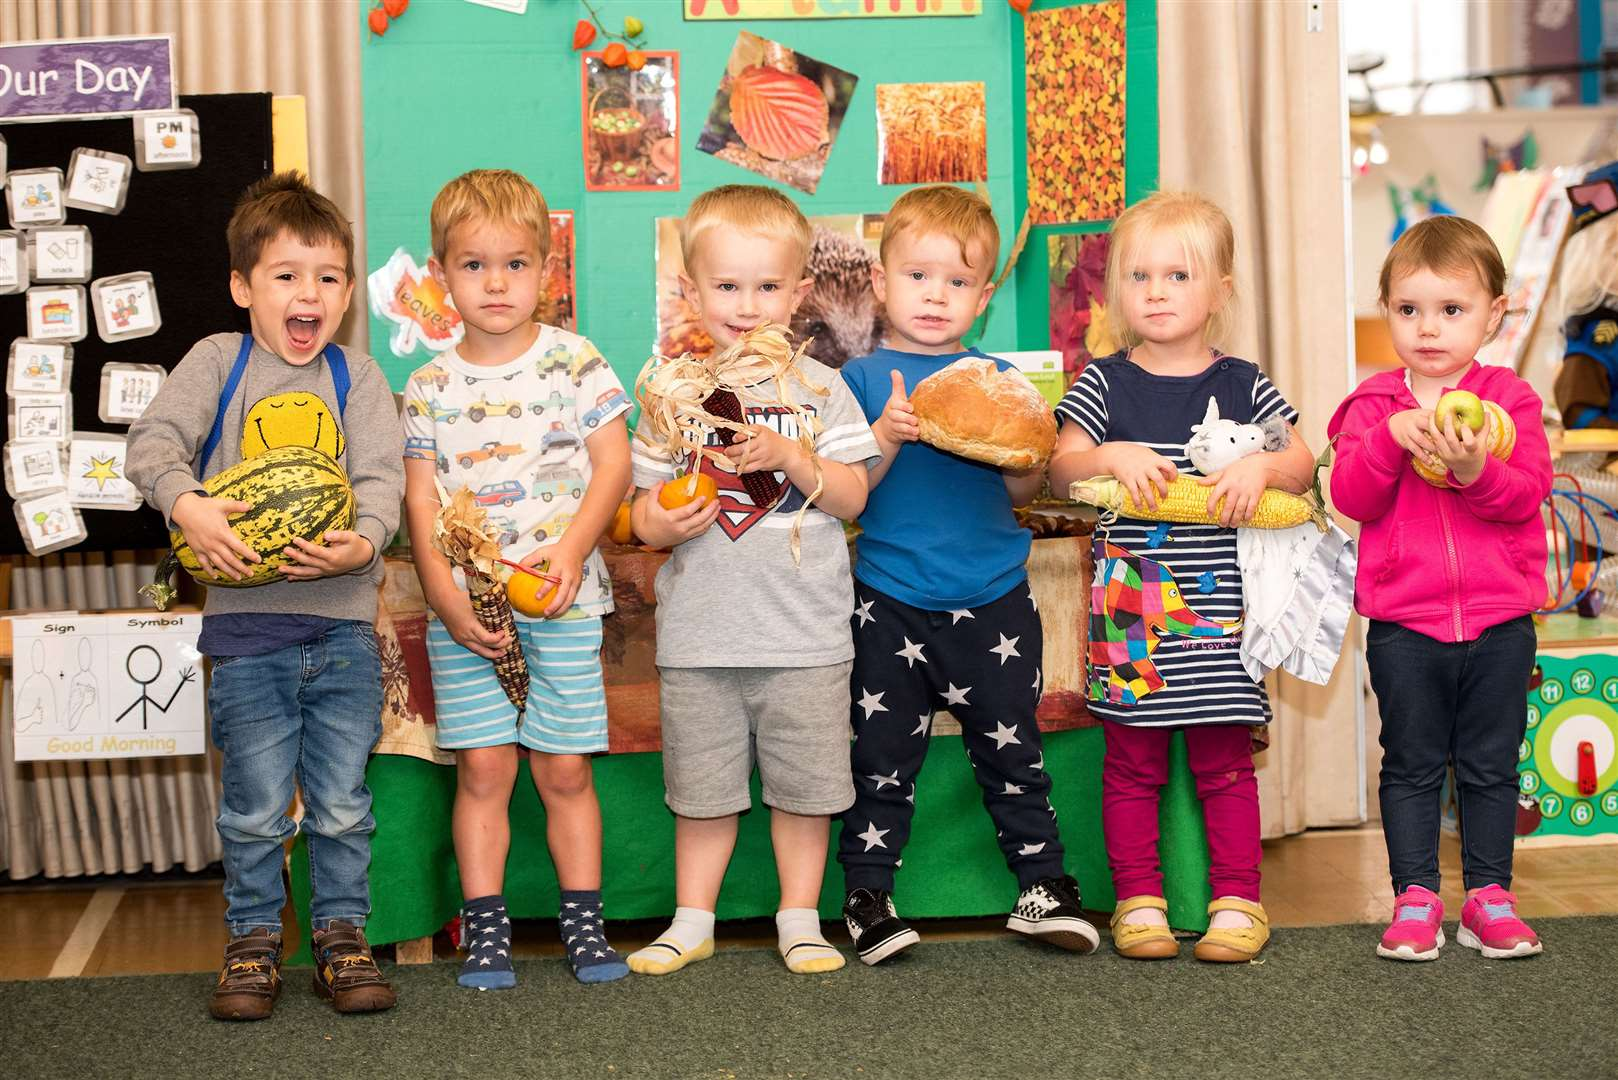 SUDBURY.Playbox pre-school, St John's Church Community Centre, York Rd, Sudbury.Children at Playbox pre-school making autumn-themed collages. Picture by Mark Westley. (18275379)